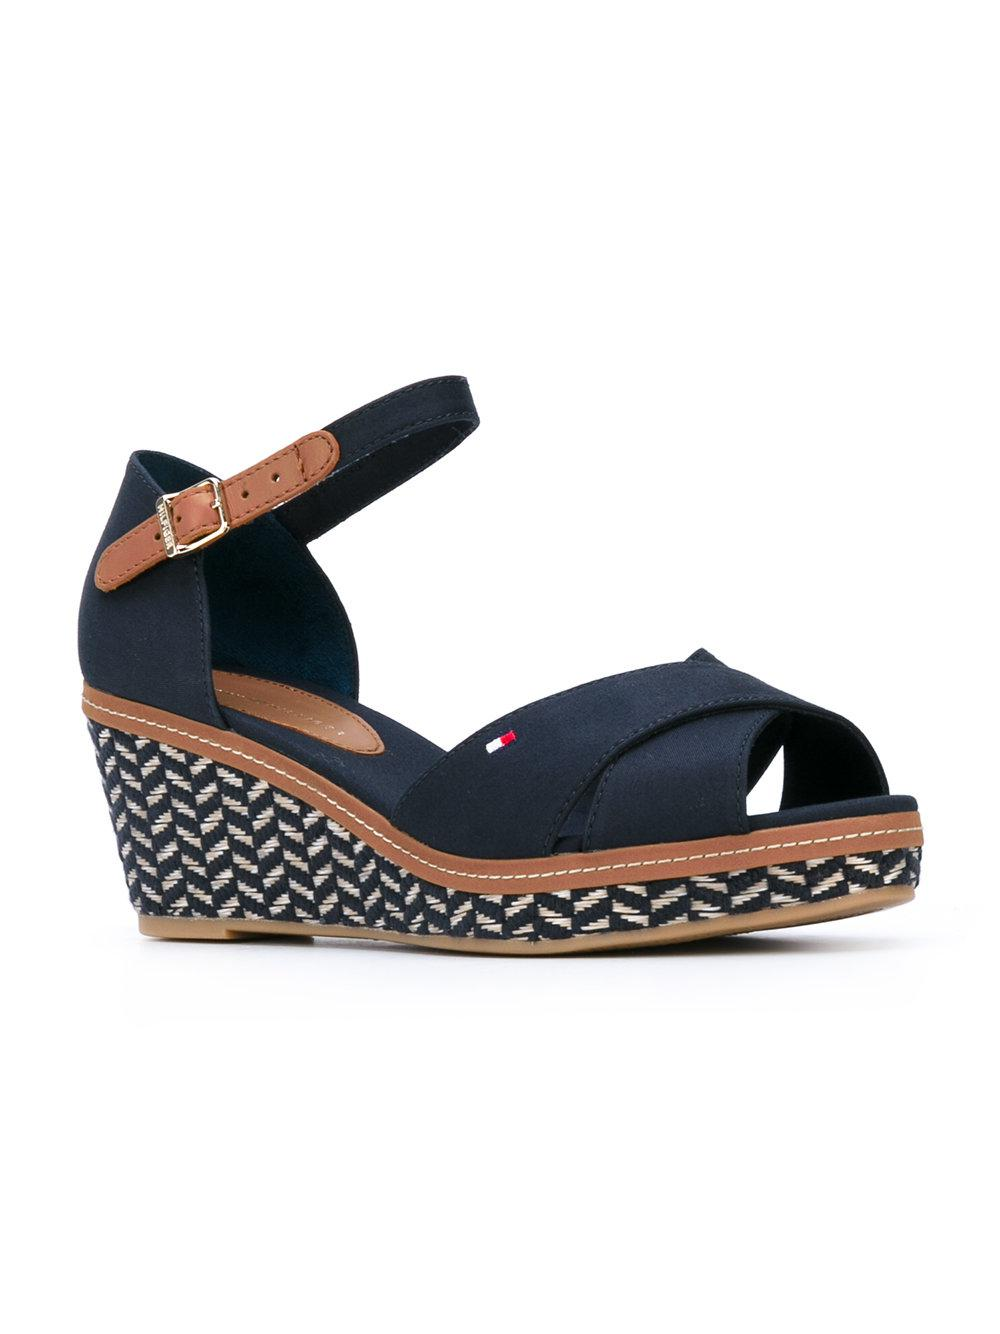 cheap sale visit new free shipping authentic Tommy Hilfiger patterned wedge sandals CTI5HAPZXJ